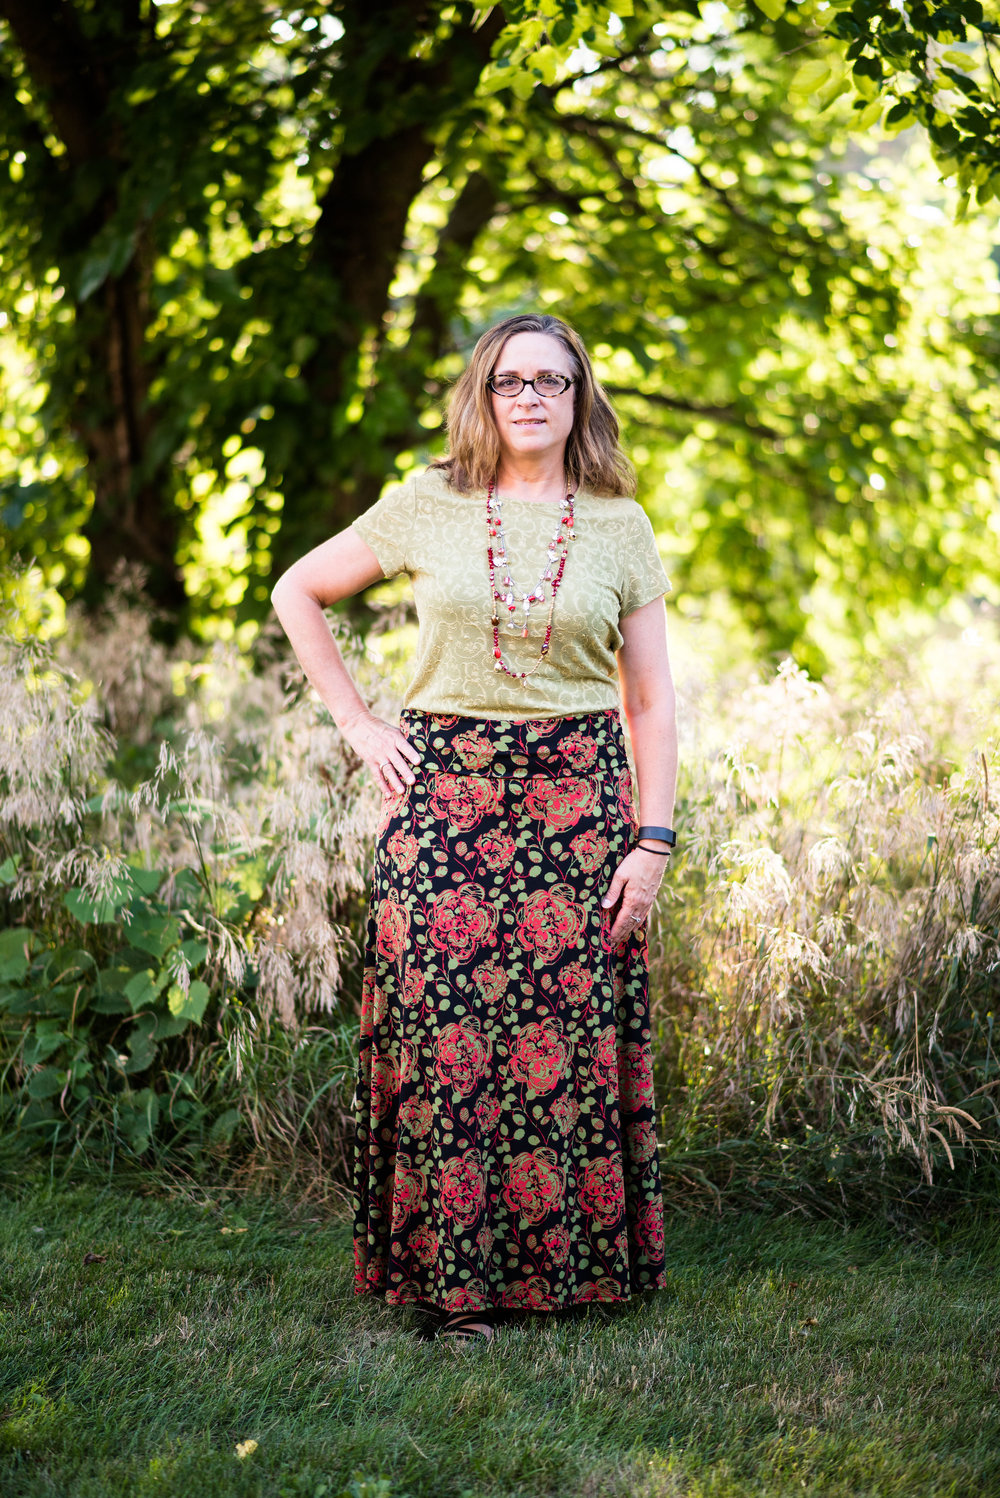 Small Business Spotlight - Kaylee Barfell and LuLaRoe